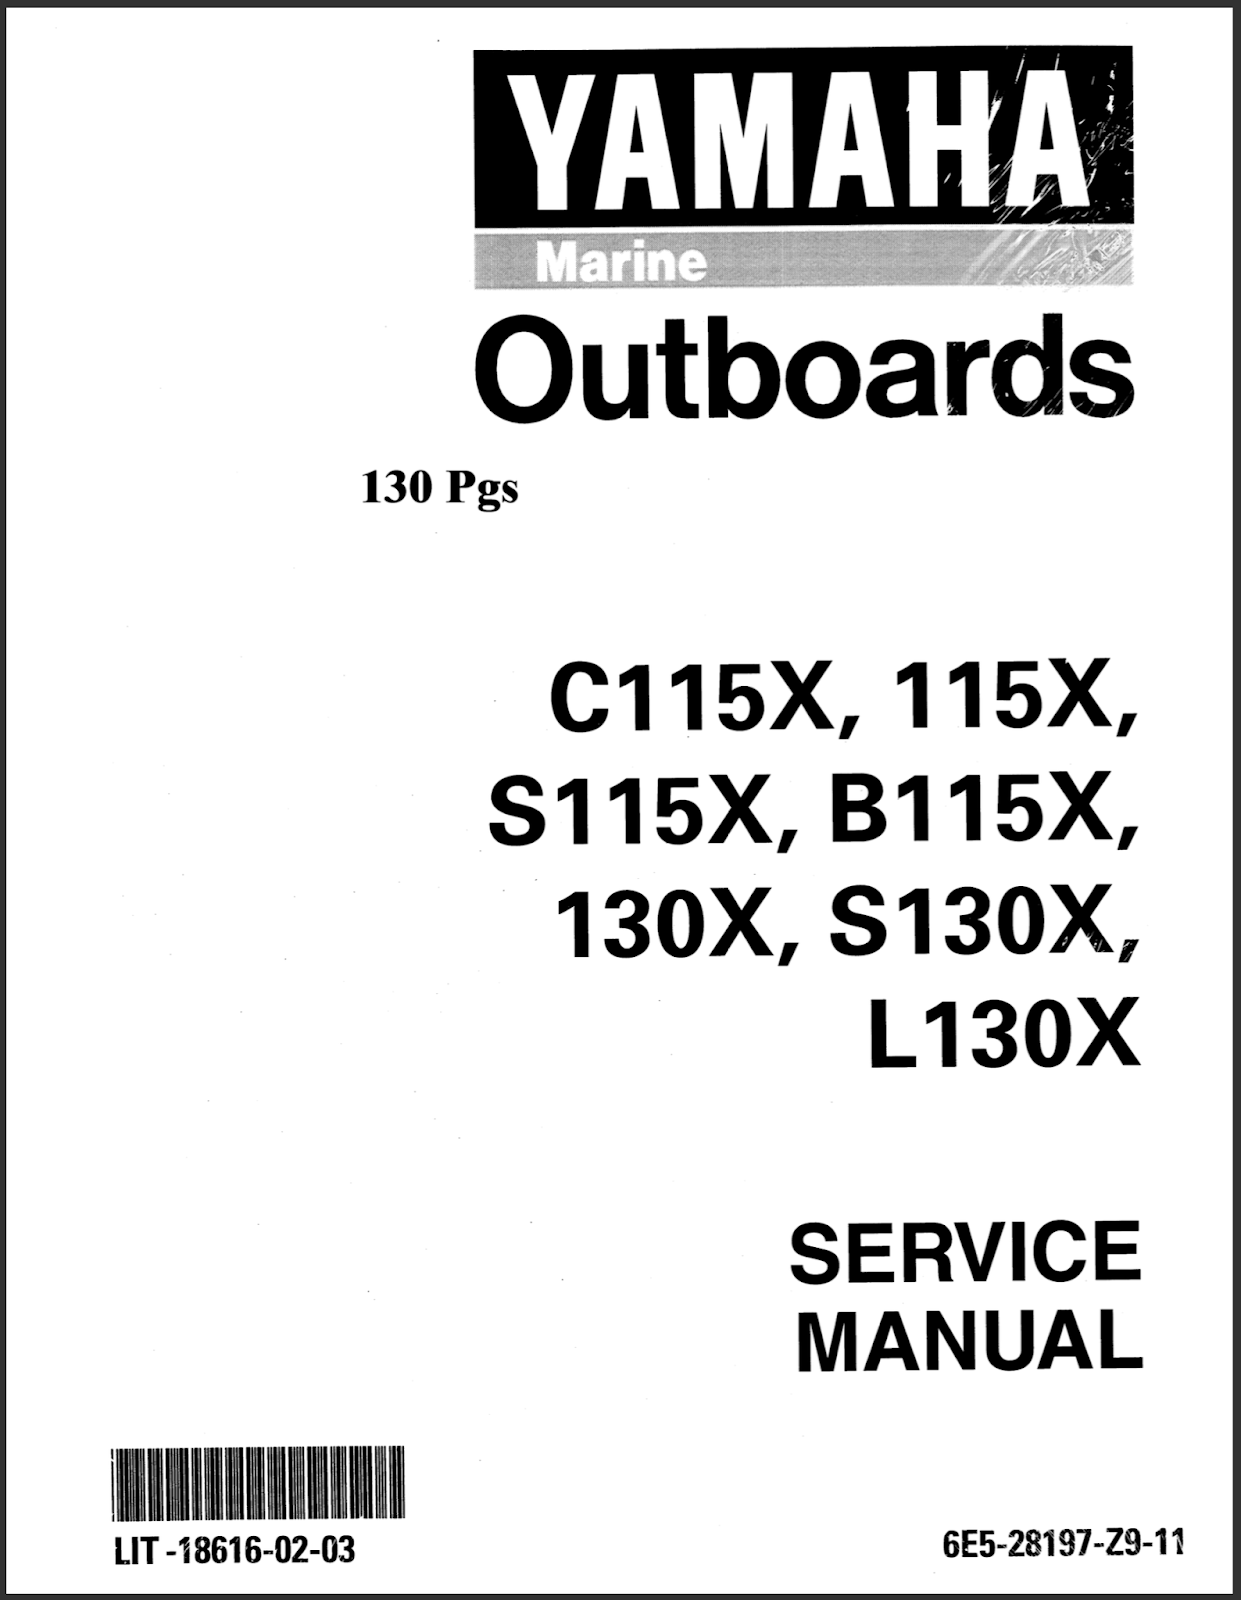 Yamaha Outboard Service Manual: DOWNLOAD Yamaha 115TRY